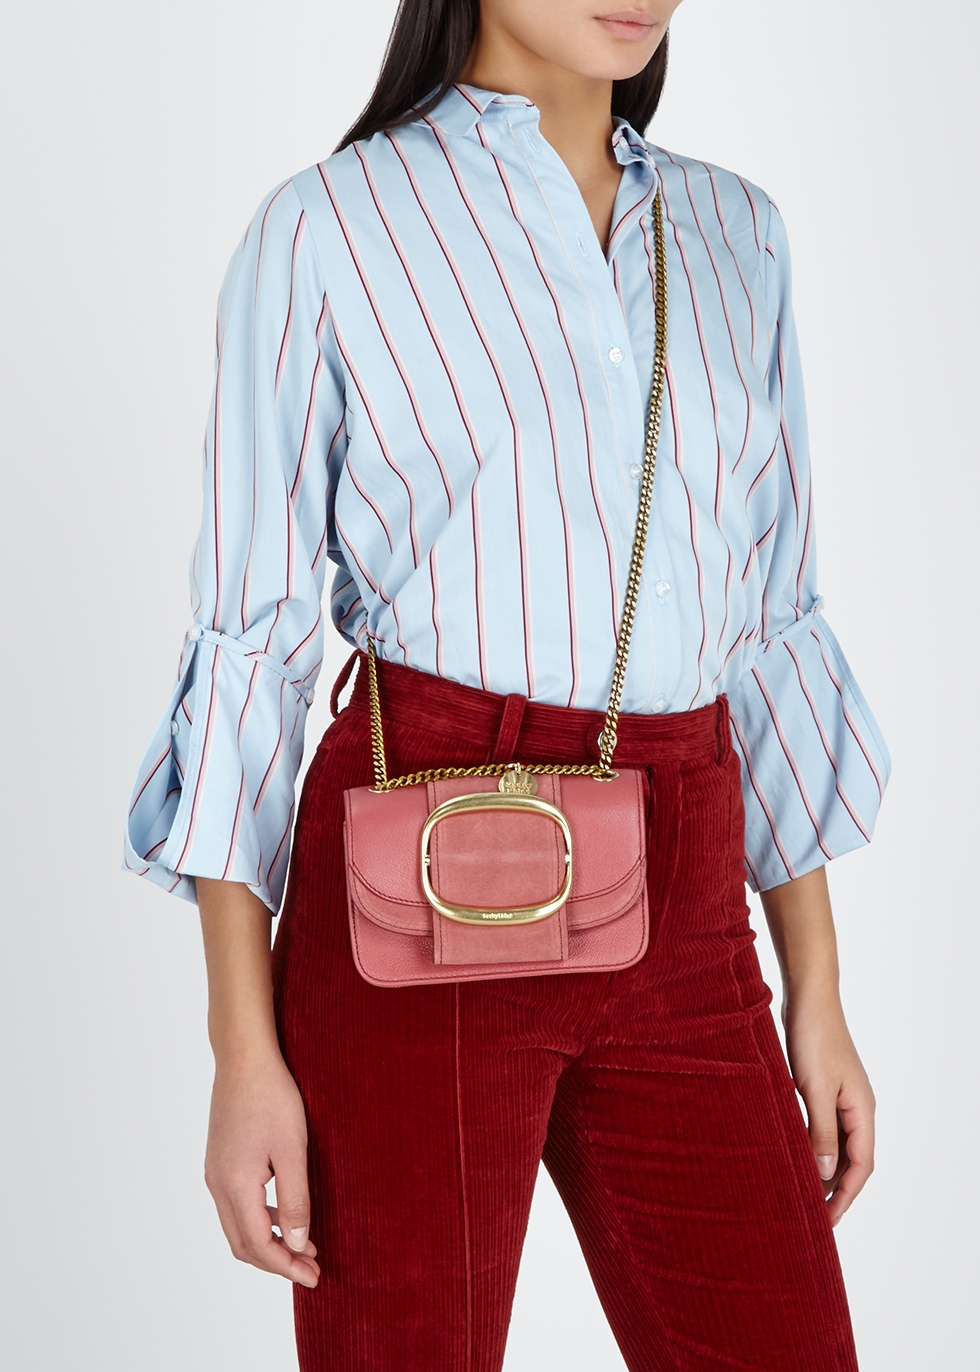 50cb3a655889 See by Chloé Hopper small leather cross-body bag - Harvey Nichols